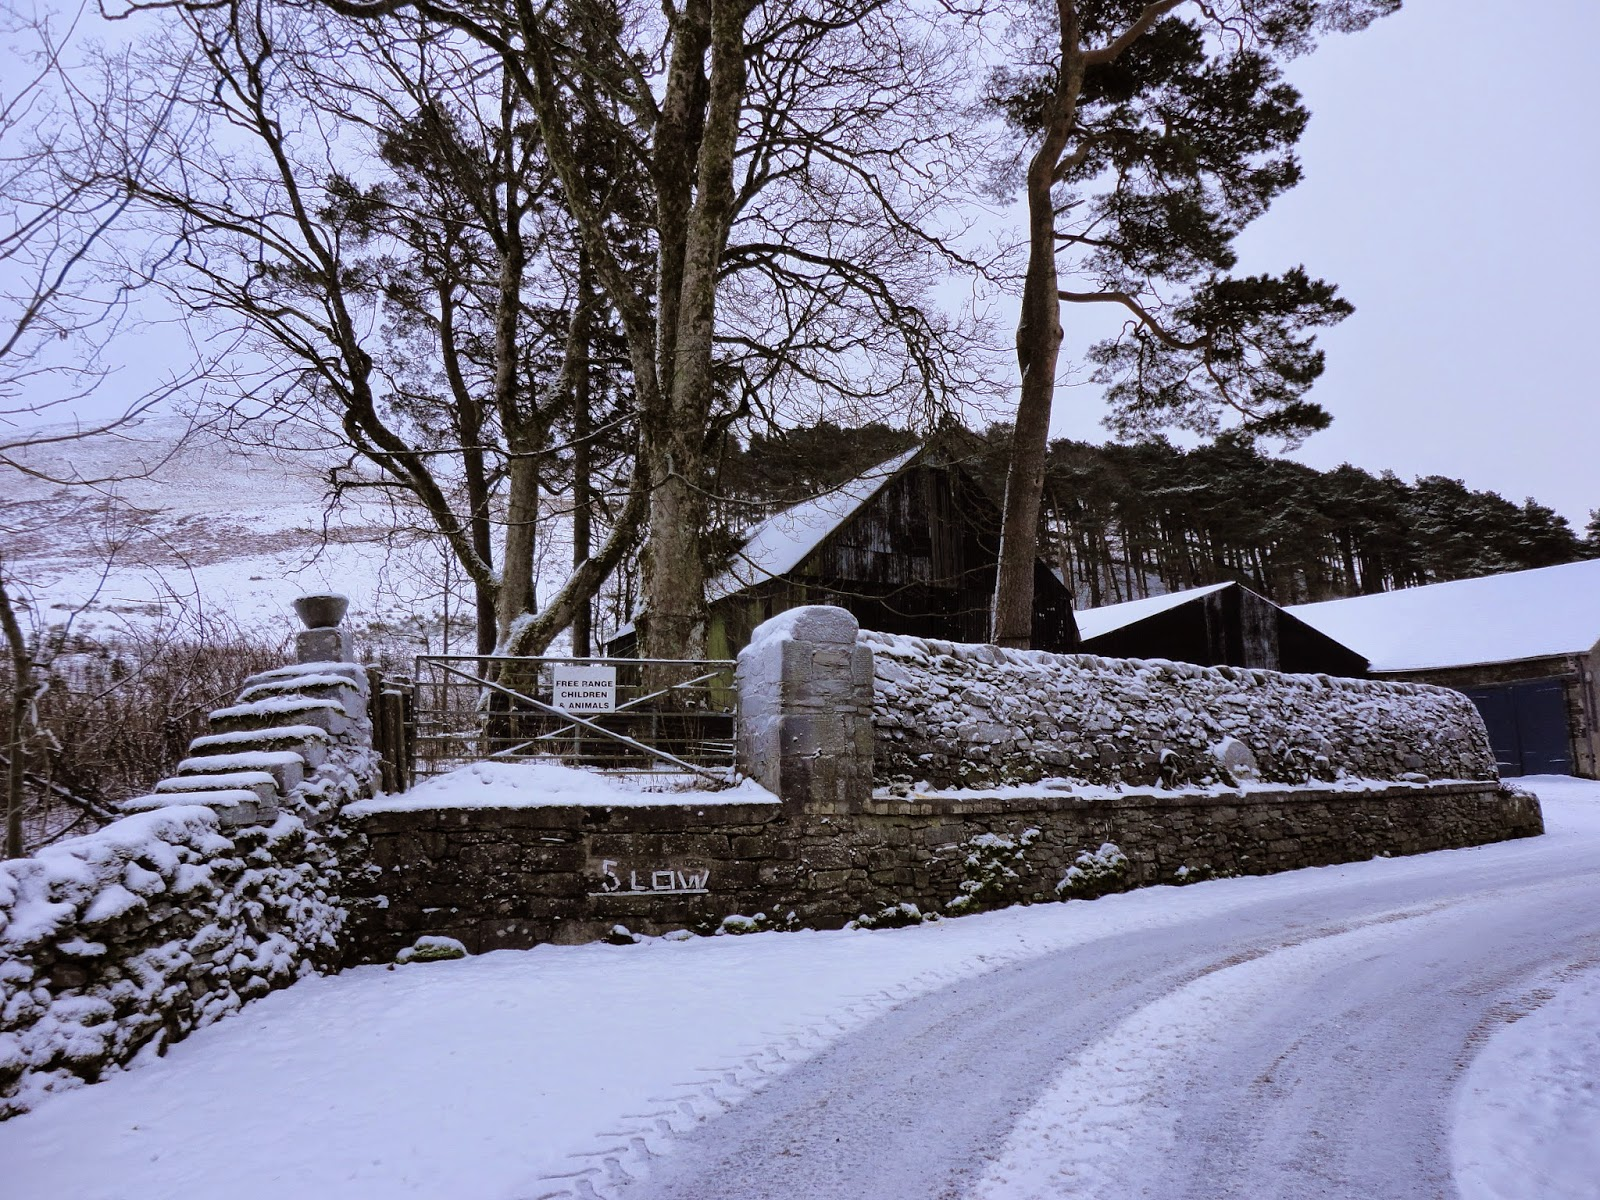 country farm landscape in winter with trees and wall in snow in scotland